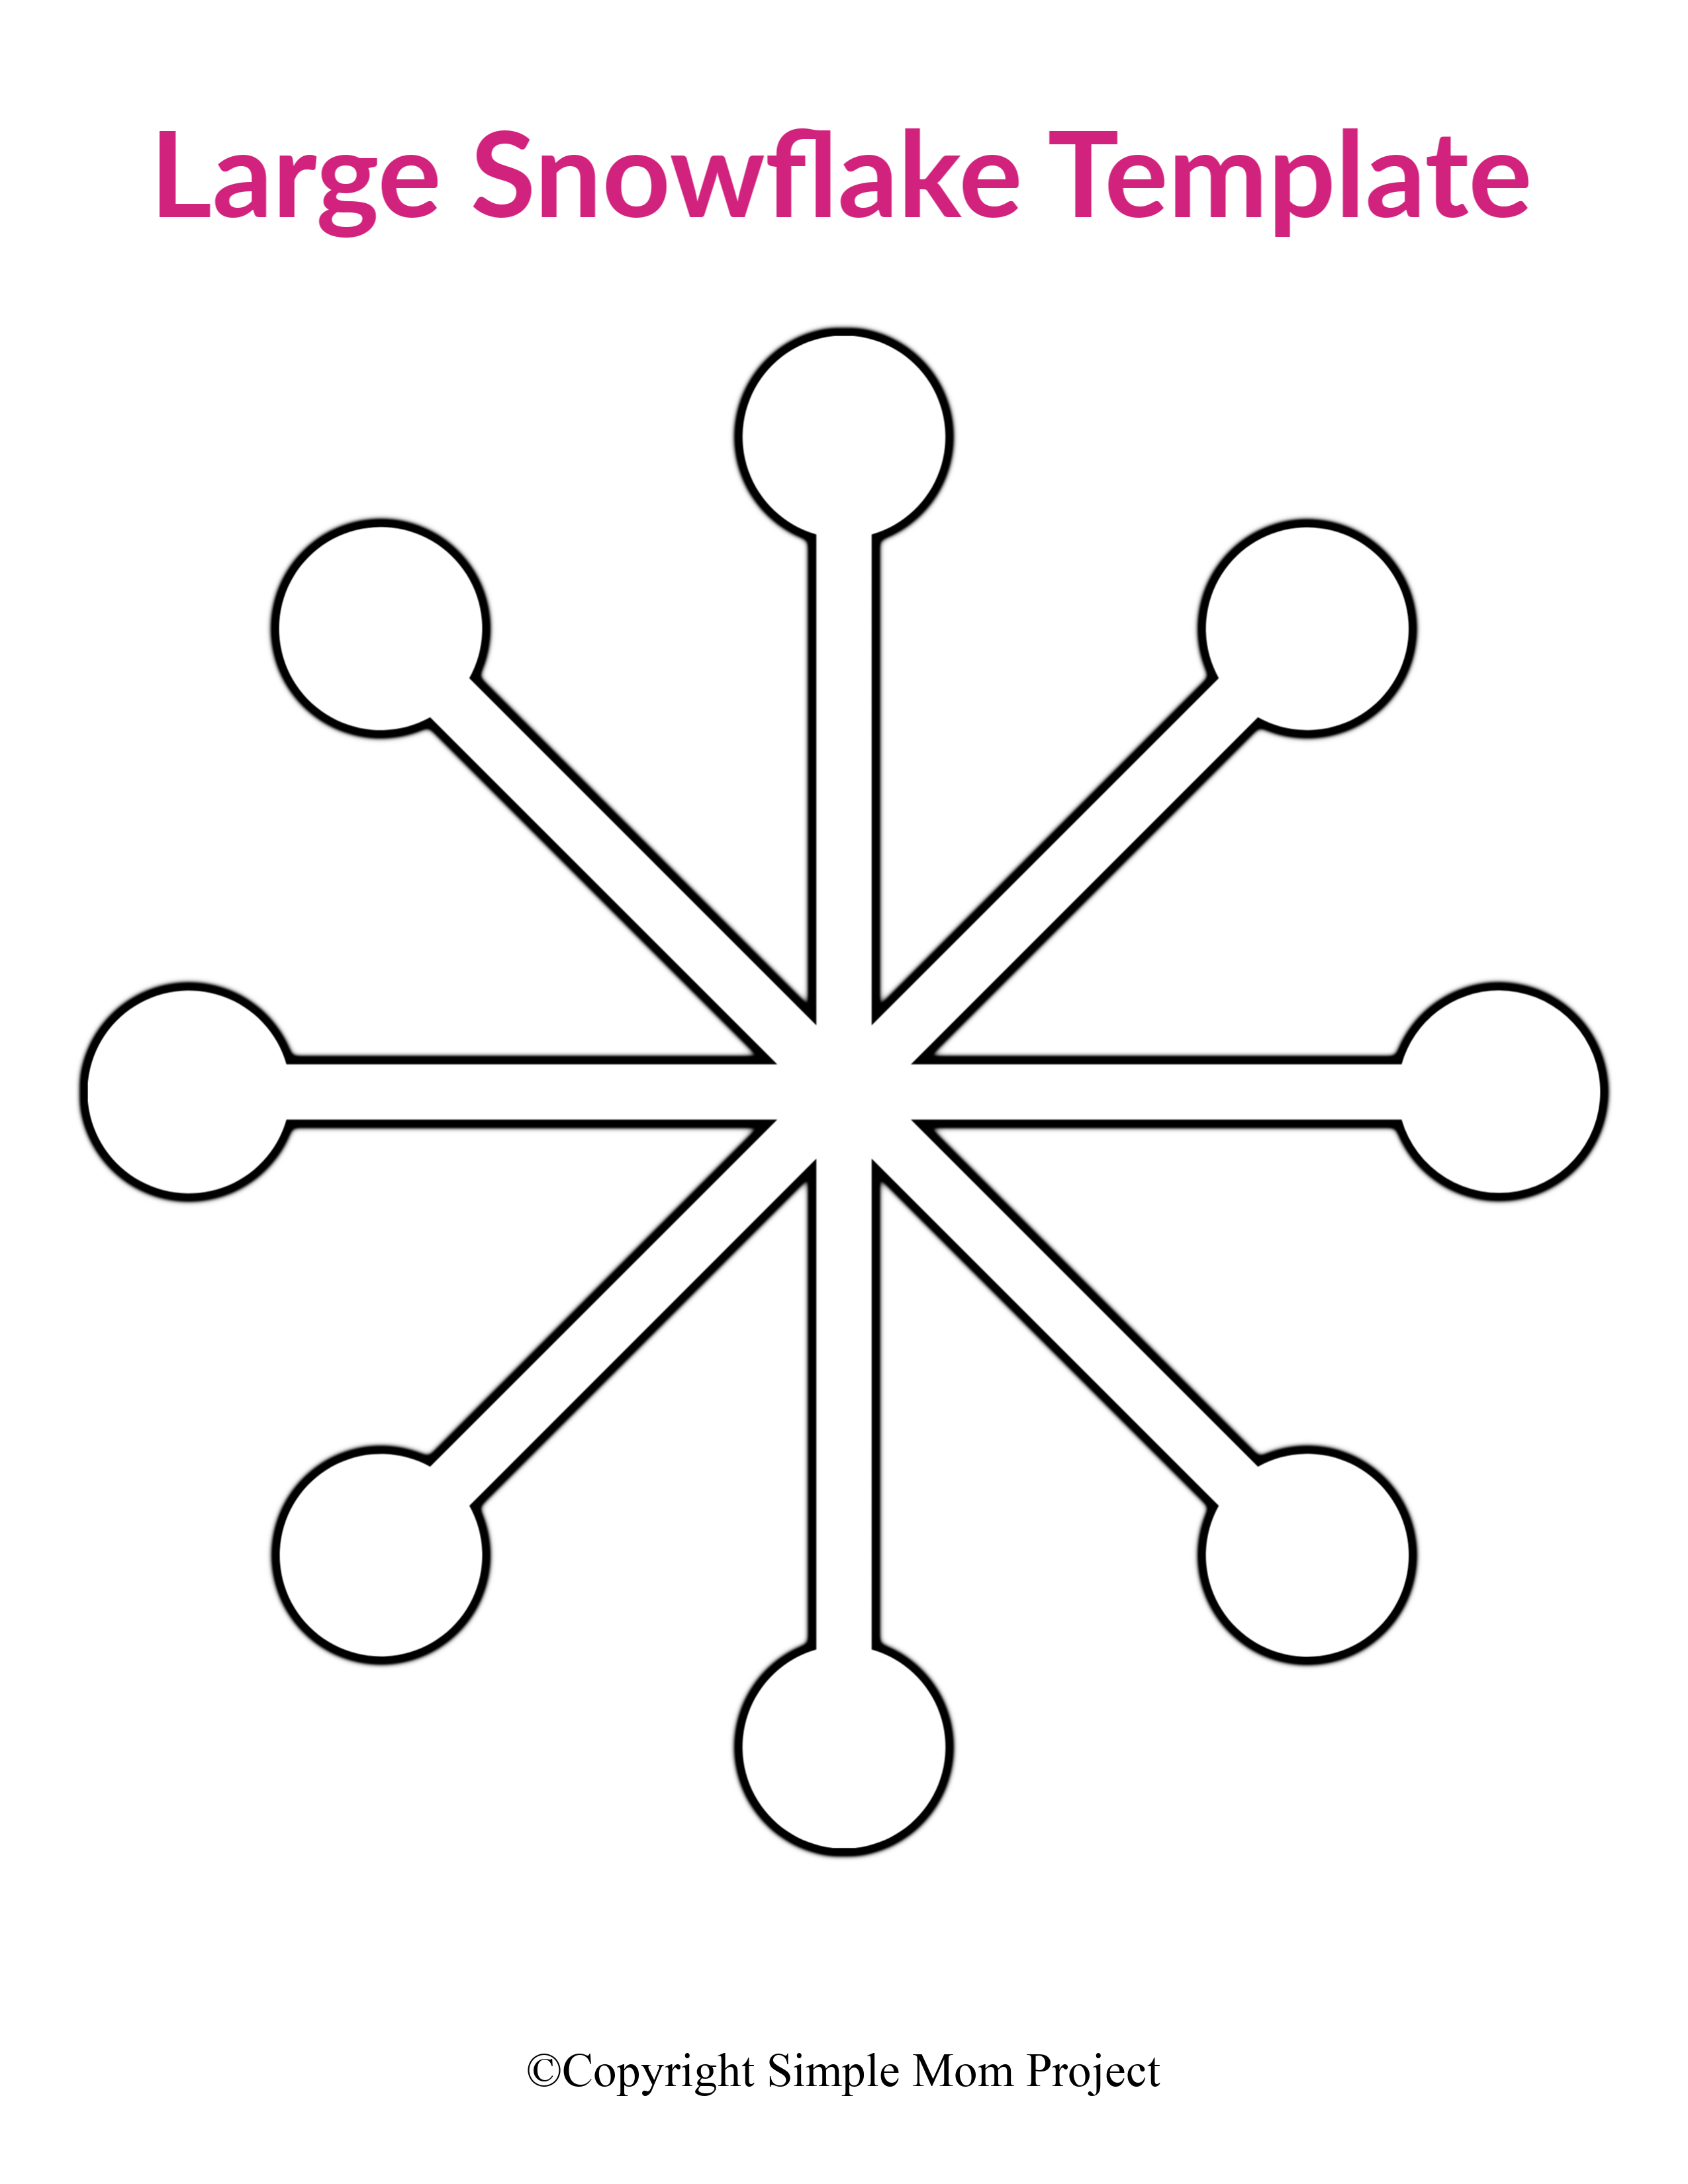 Printable Snowflake Coloring Pages For Kids | 3300x2550